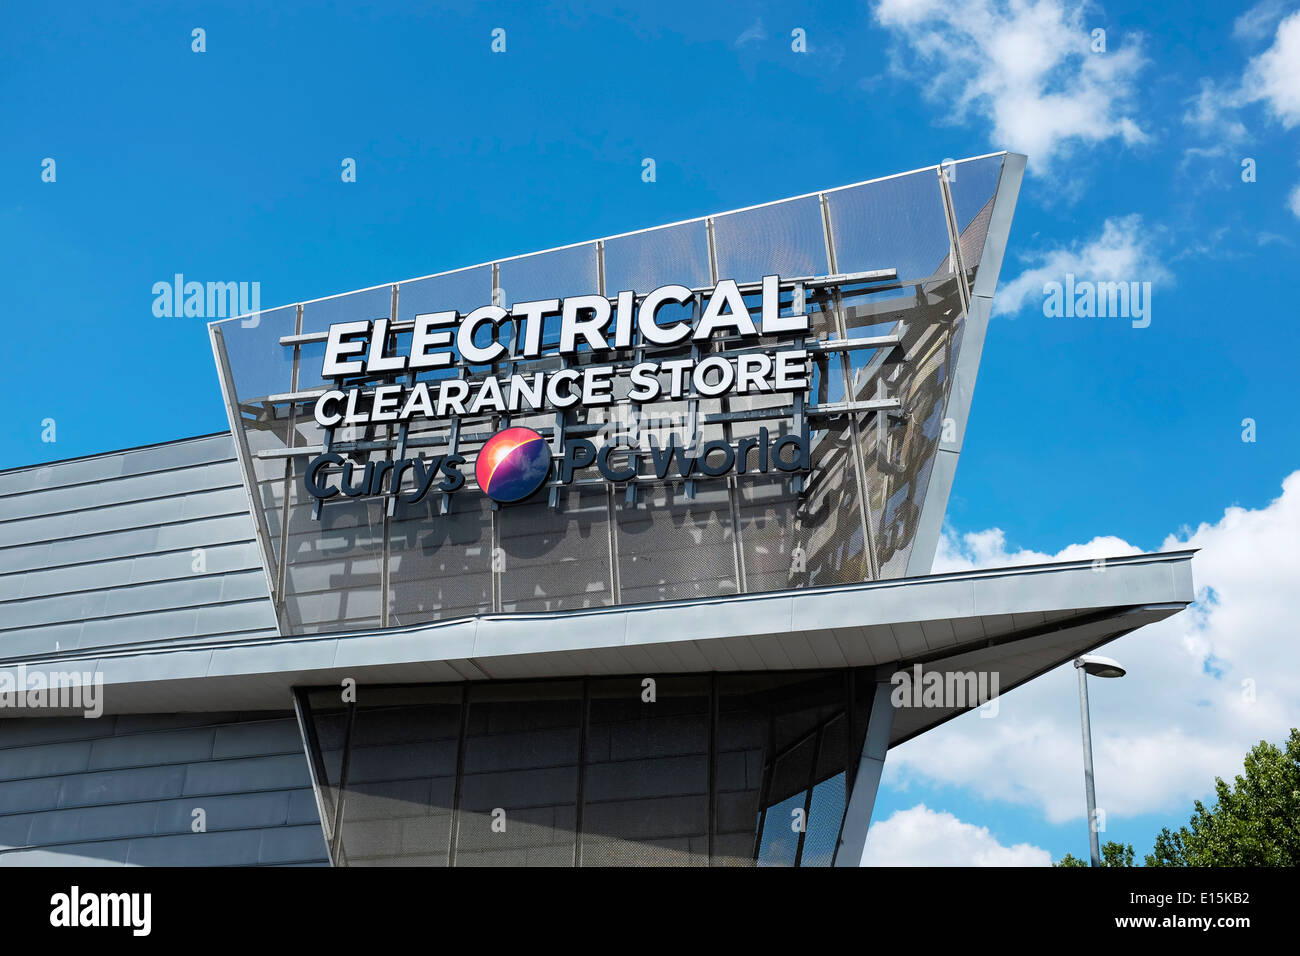 Currys PC World Electrical Clearance Store in Manchester UK - Stock Image